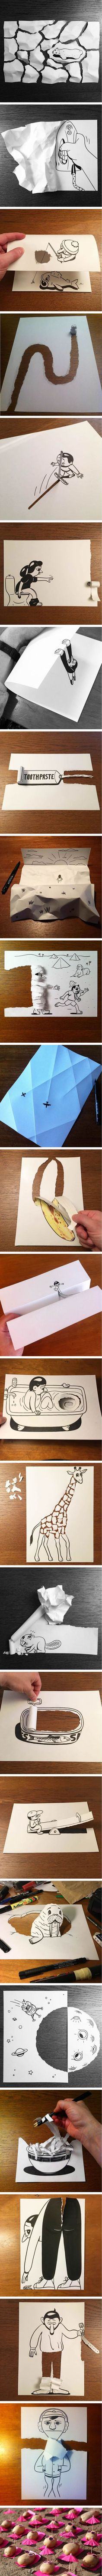 Copenhagen based Illustrator HuskMitNavn Uses Clever 3D Tricks To Bring His Cartoons To Life - 9GAG